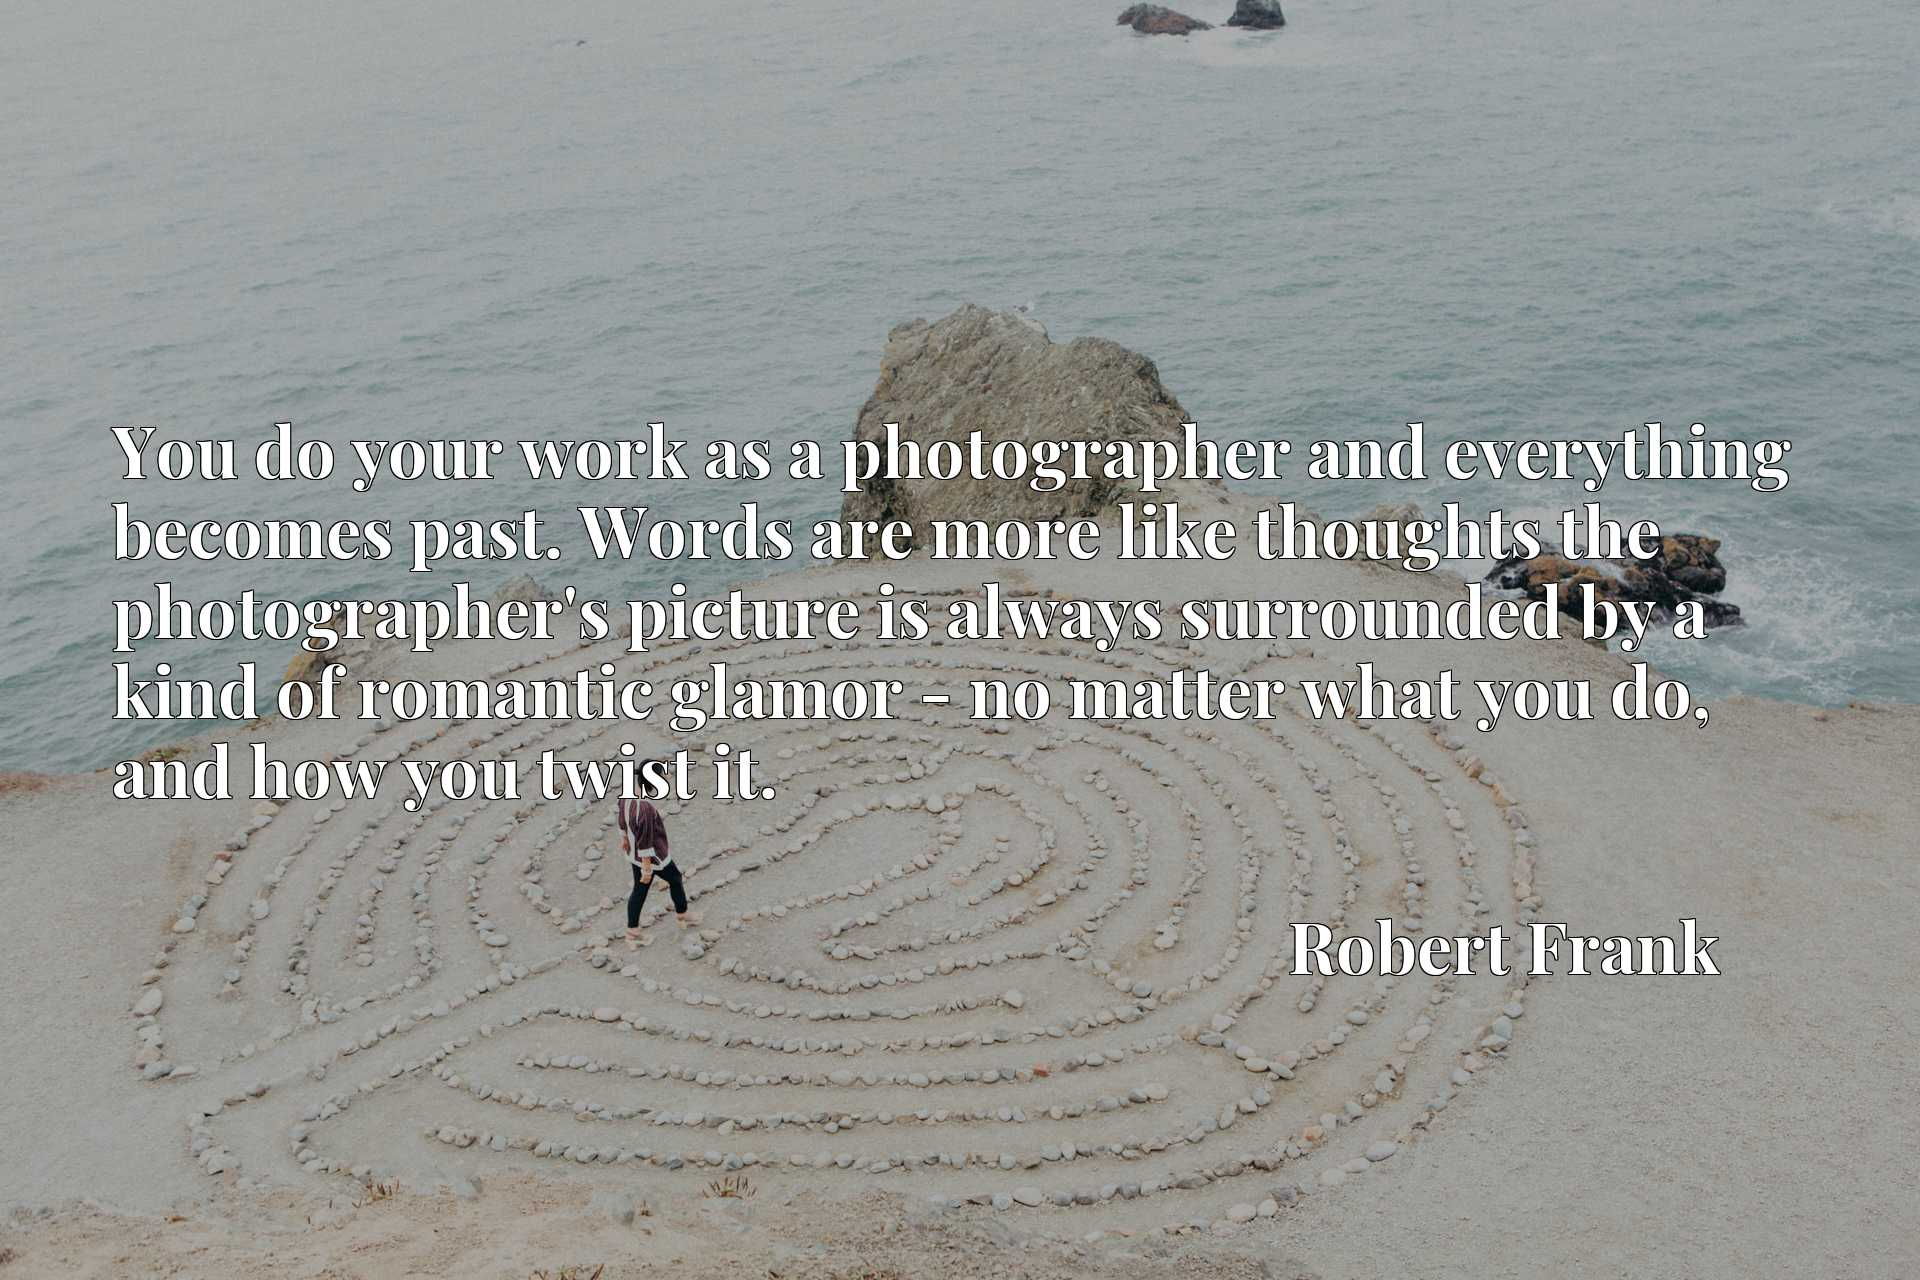 You do your work as a photographer and everything becomes past. Words are more like thoughts the photographer's picture is always surrounded by a kind of romantic glamor - no matter what you do, and how you twist it.